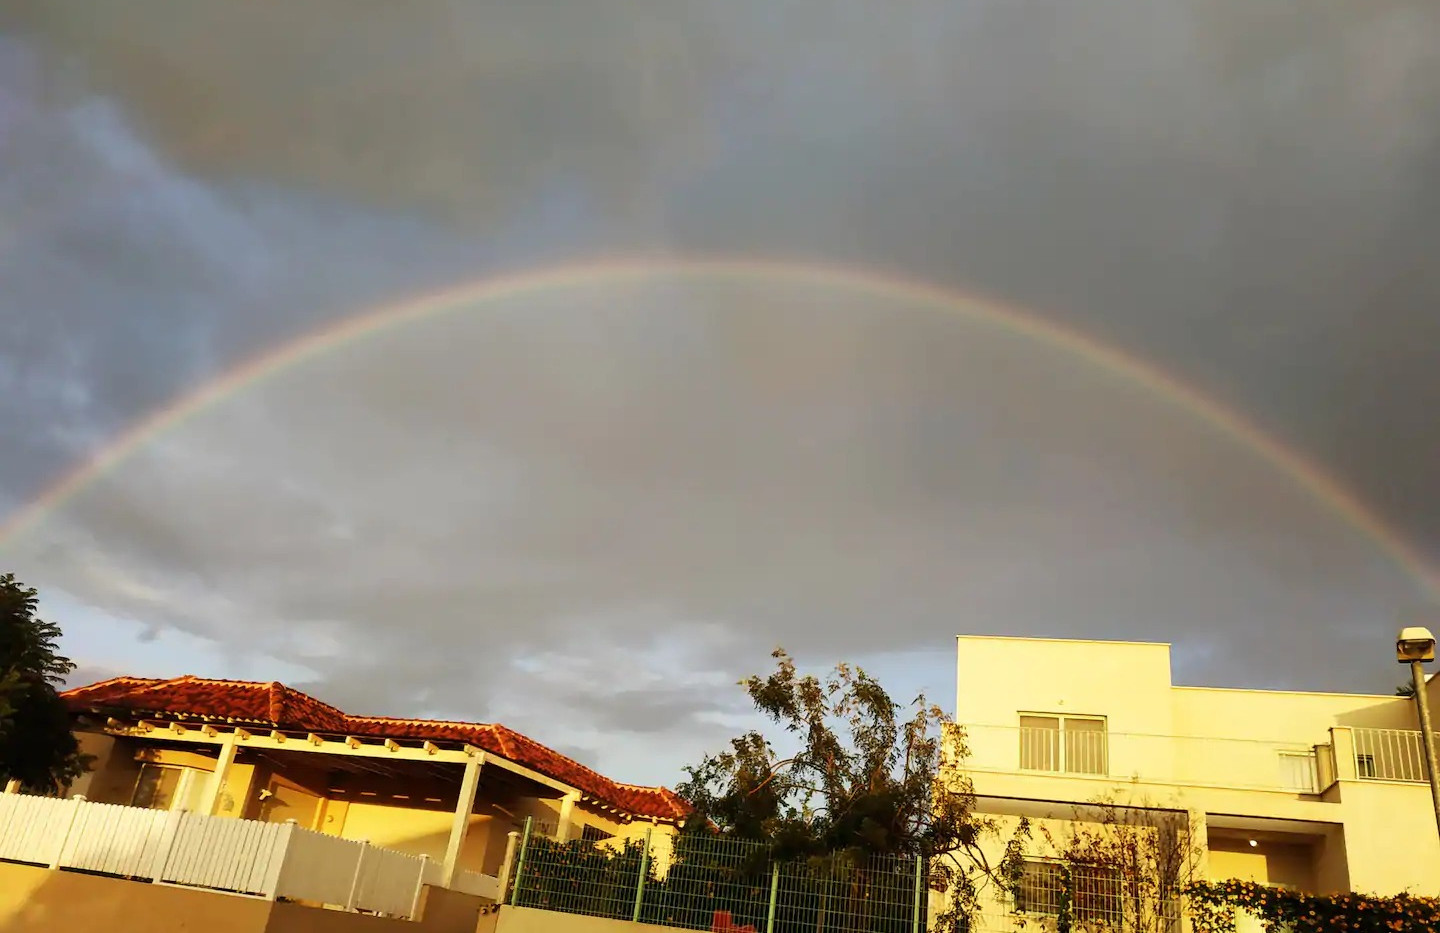 מרץ 2020 . קשת מעל בתי כפר קיש למזל טוב. March 2020. A rainbow above Kfar Kisch's houses means good luck.